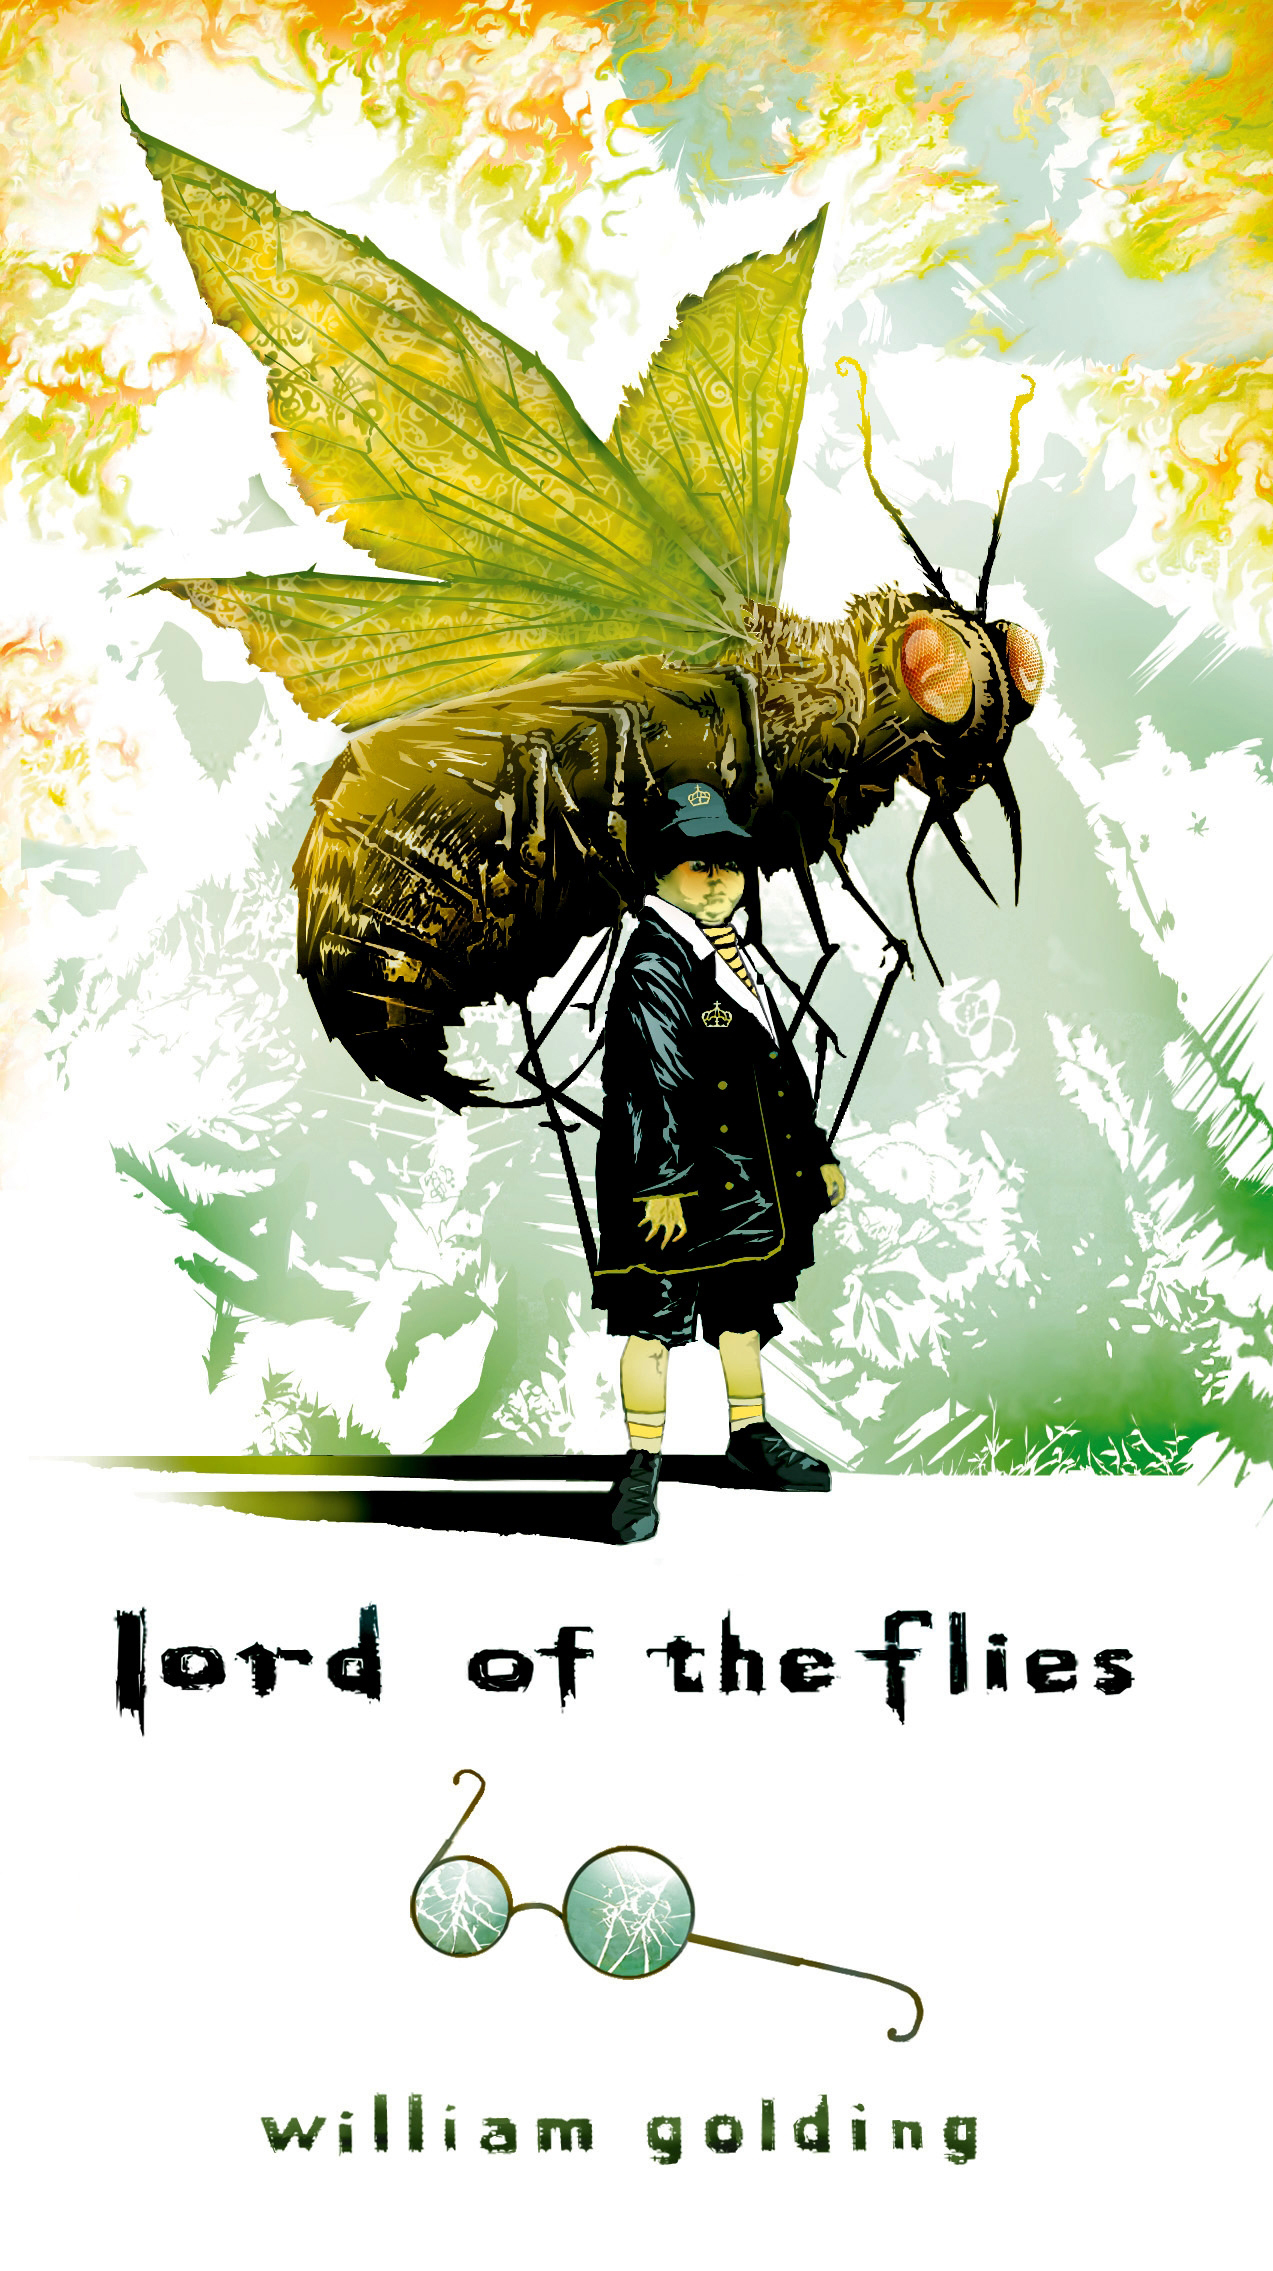 lord_of_the_flies_by_william_golding